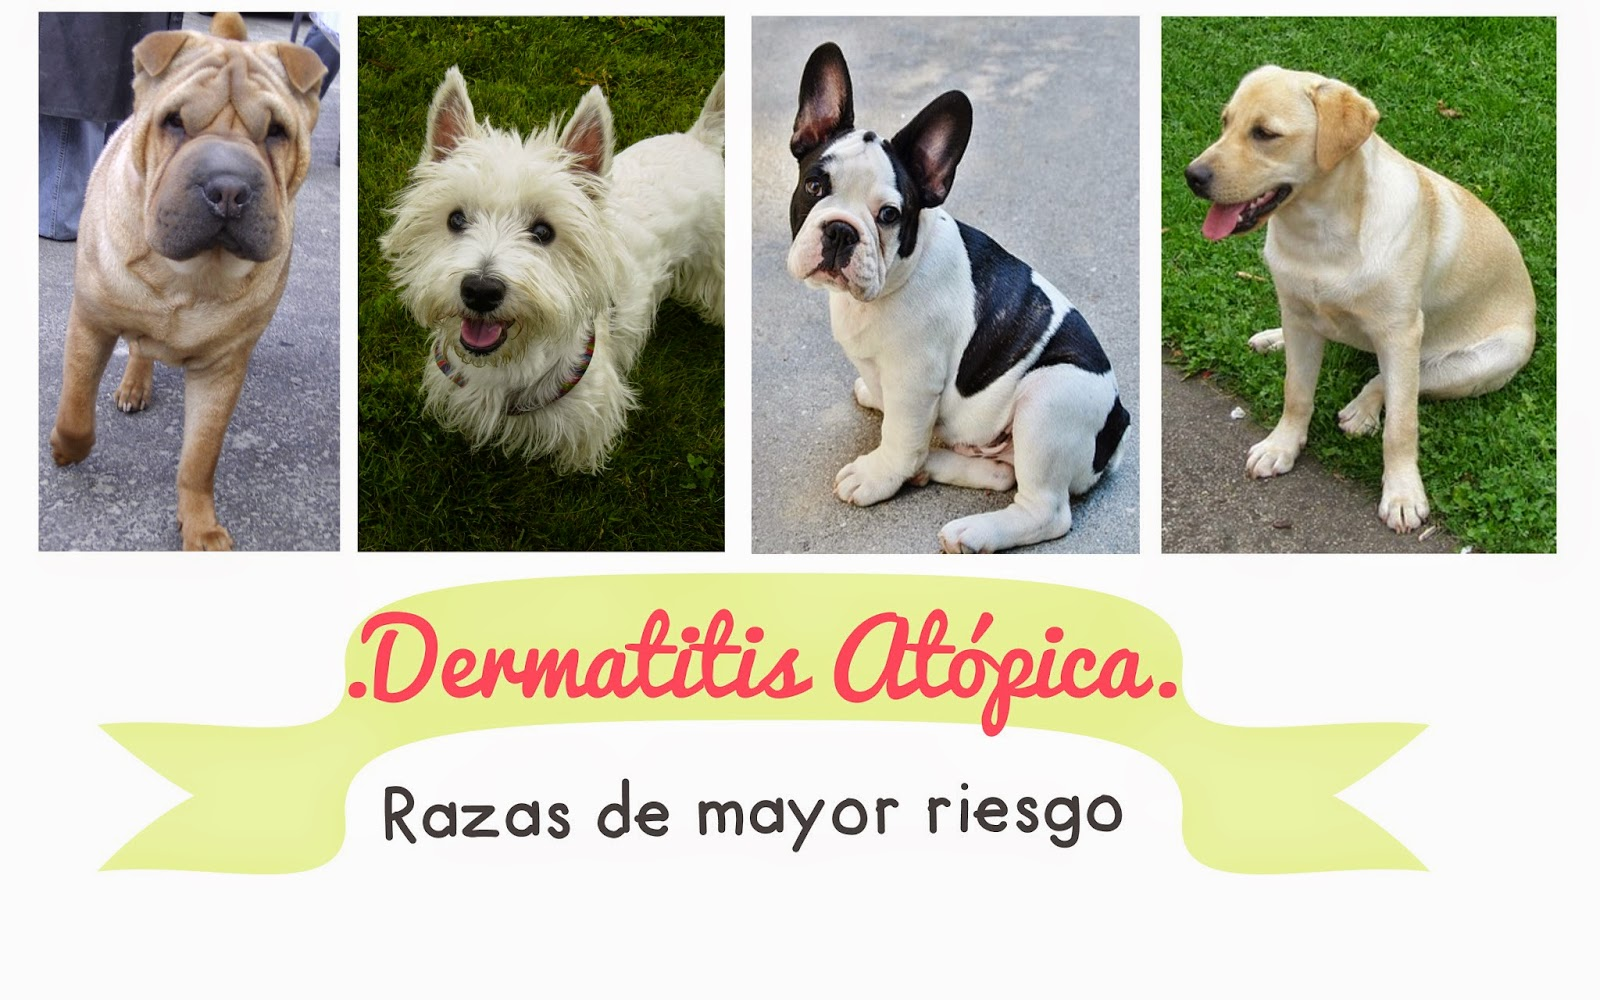 razas-propensas-dematitis-atopica